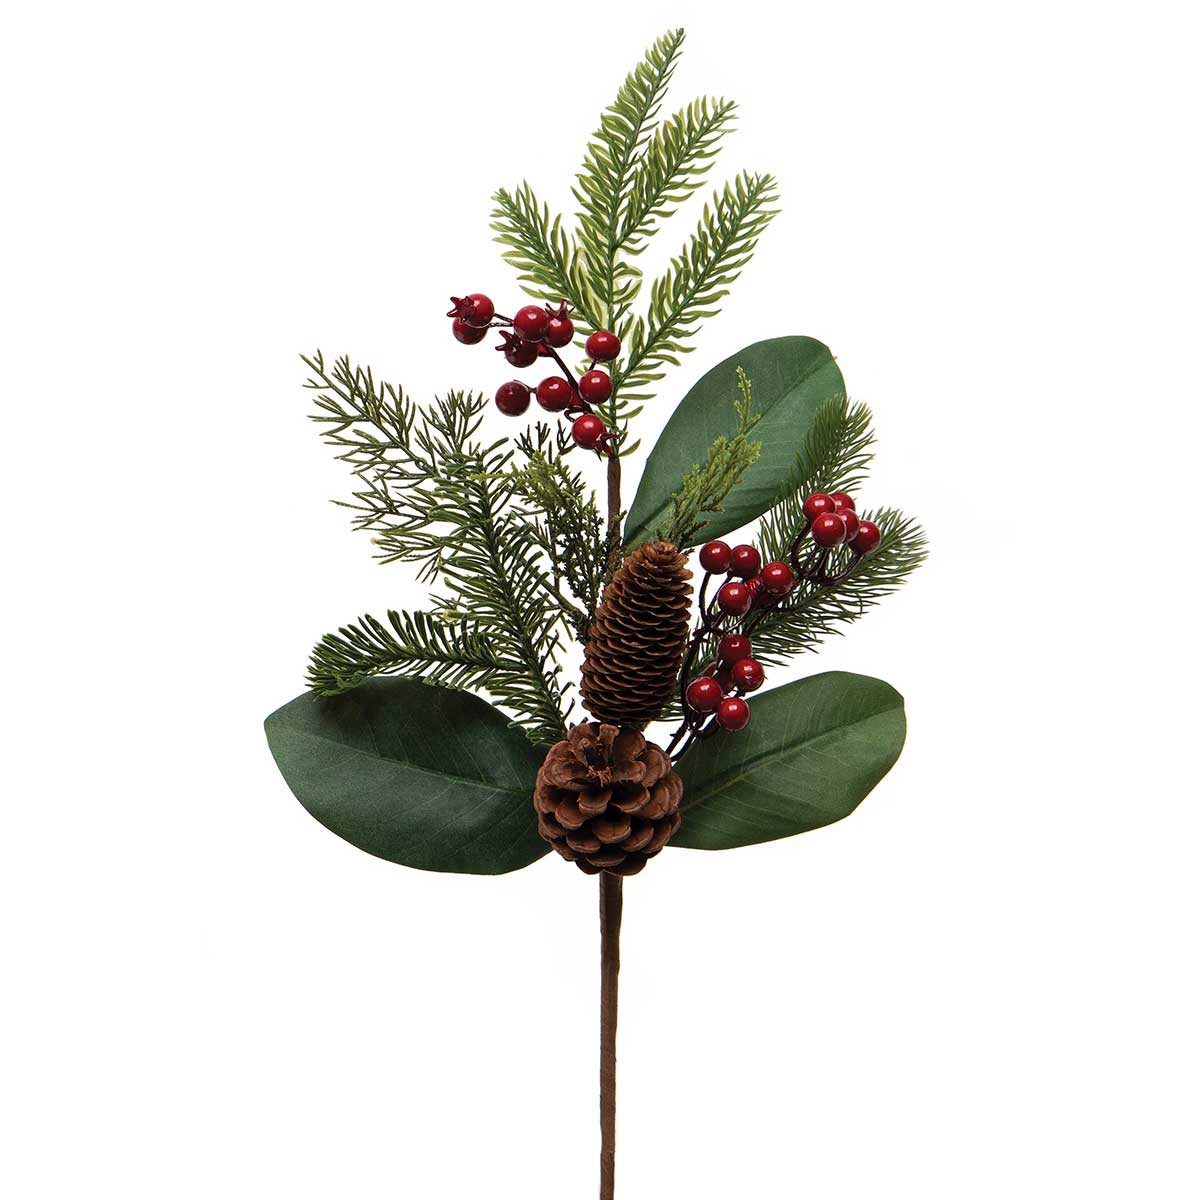 SOUTHERN HOLIDAY PINE SPRAY WITH MAGNOLIA LEAVES, RED